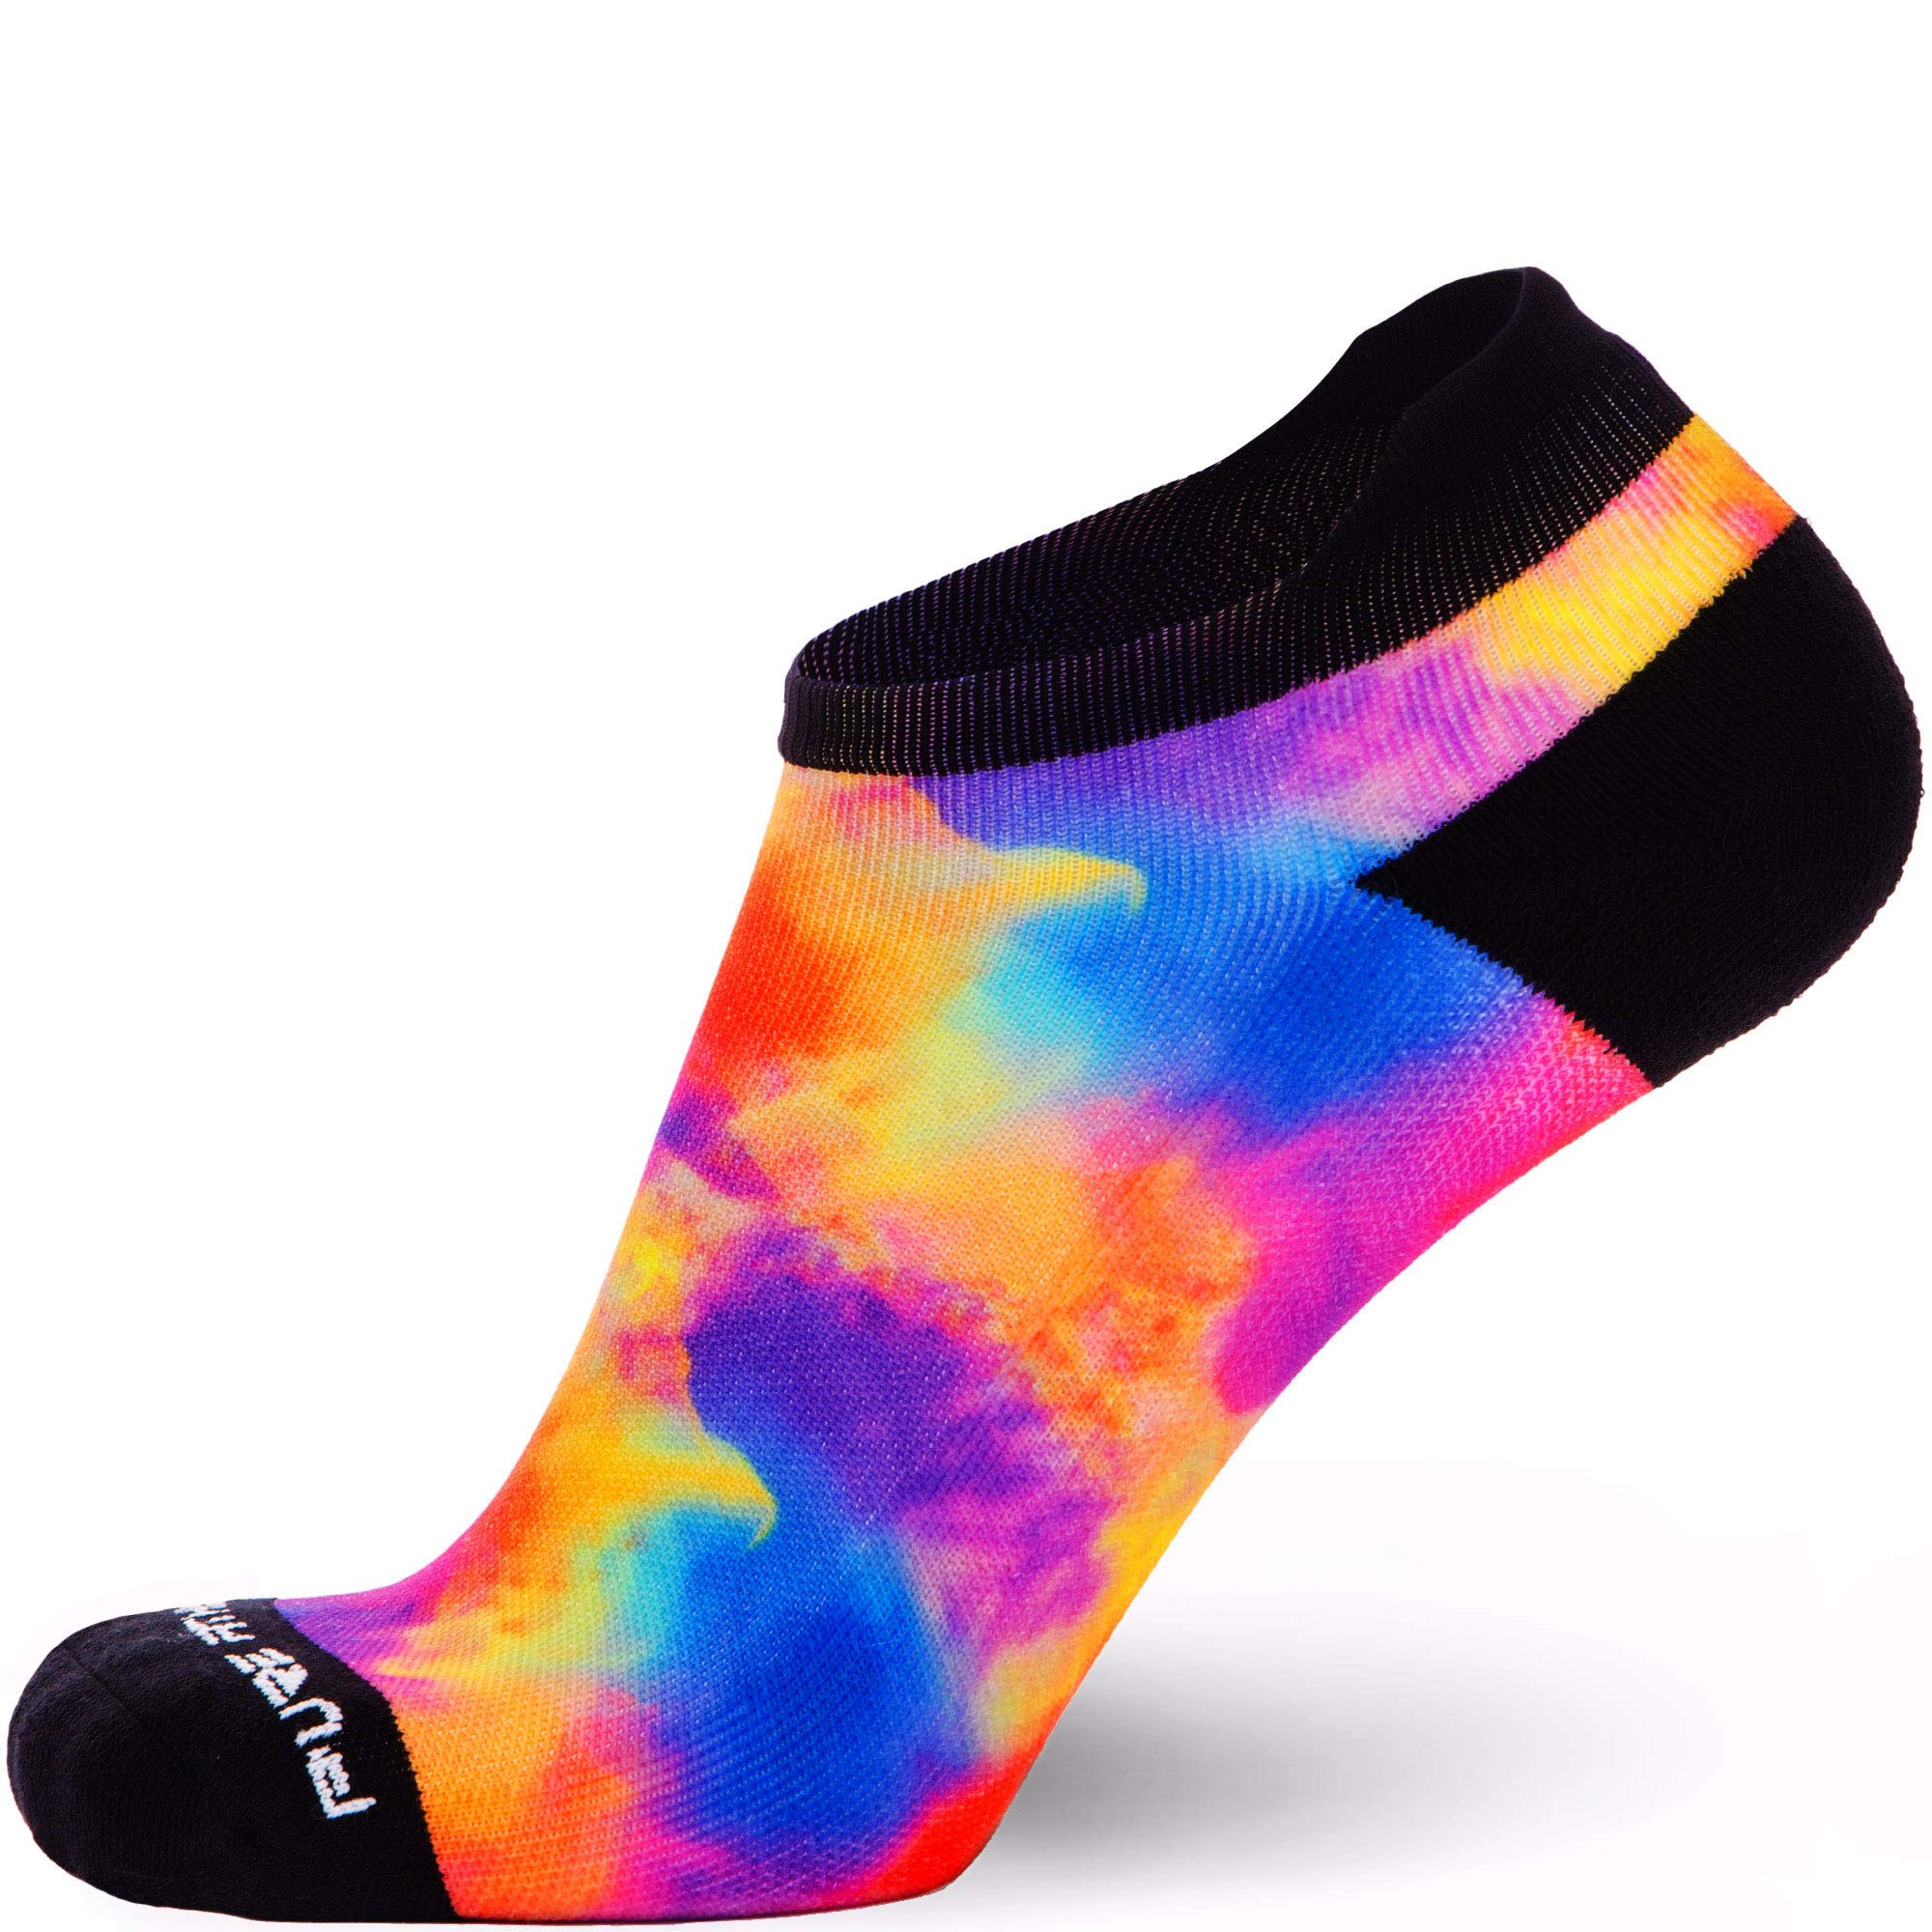 Running Socks – Best Athletic No Show for Men and Women - Low-Show Light Cushion